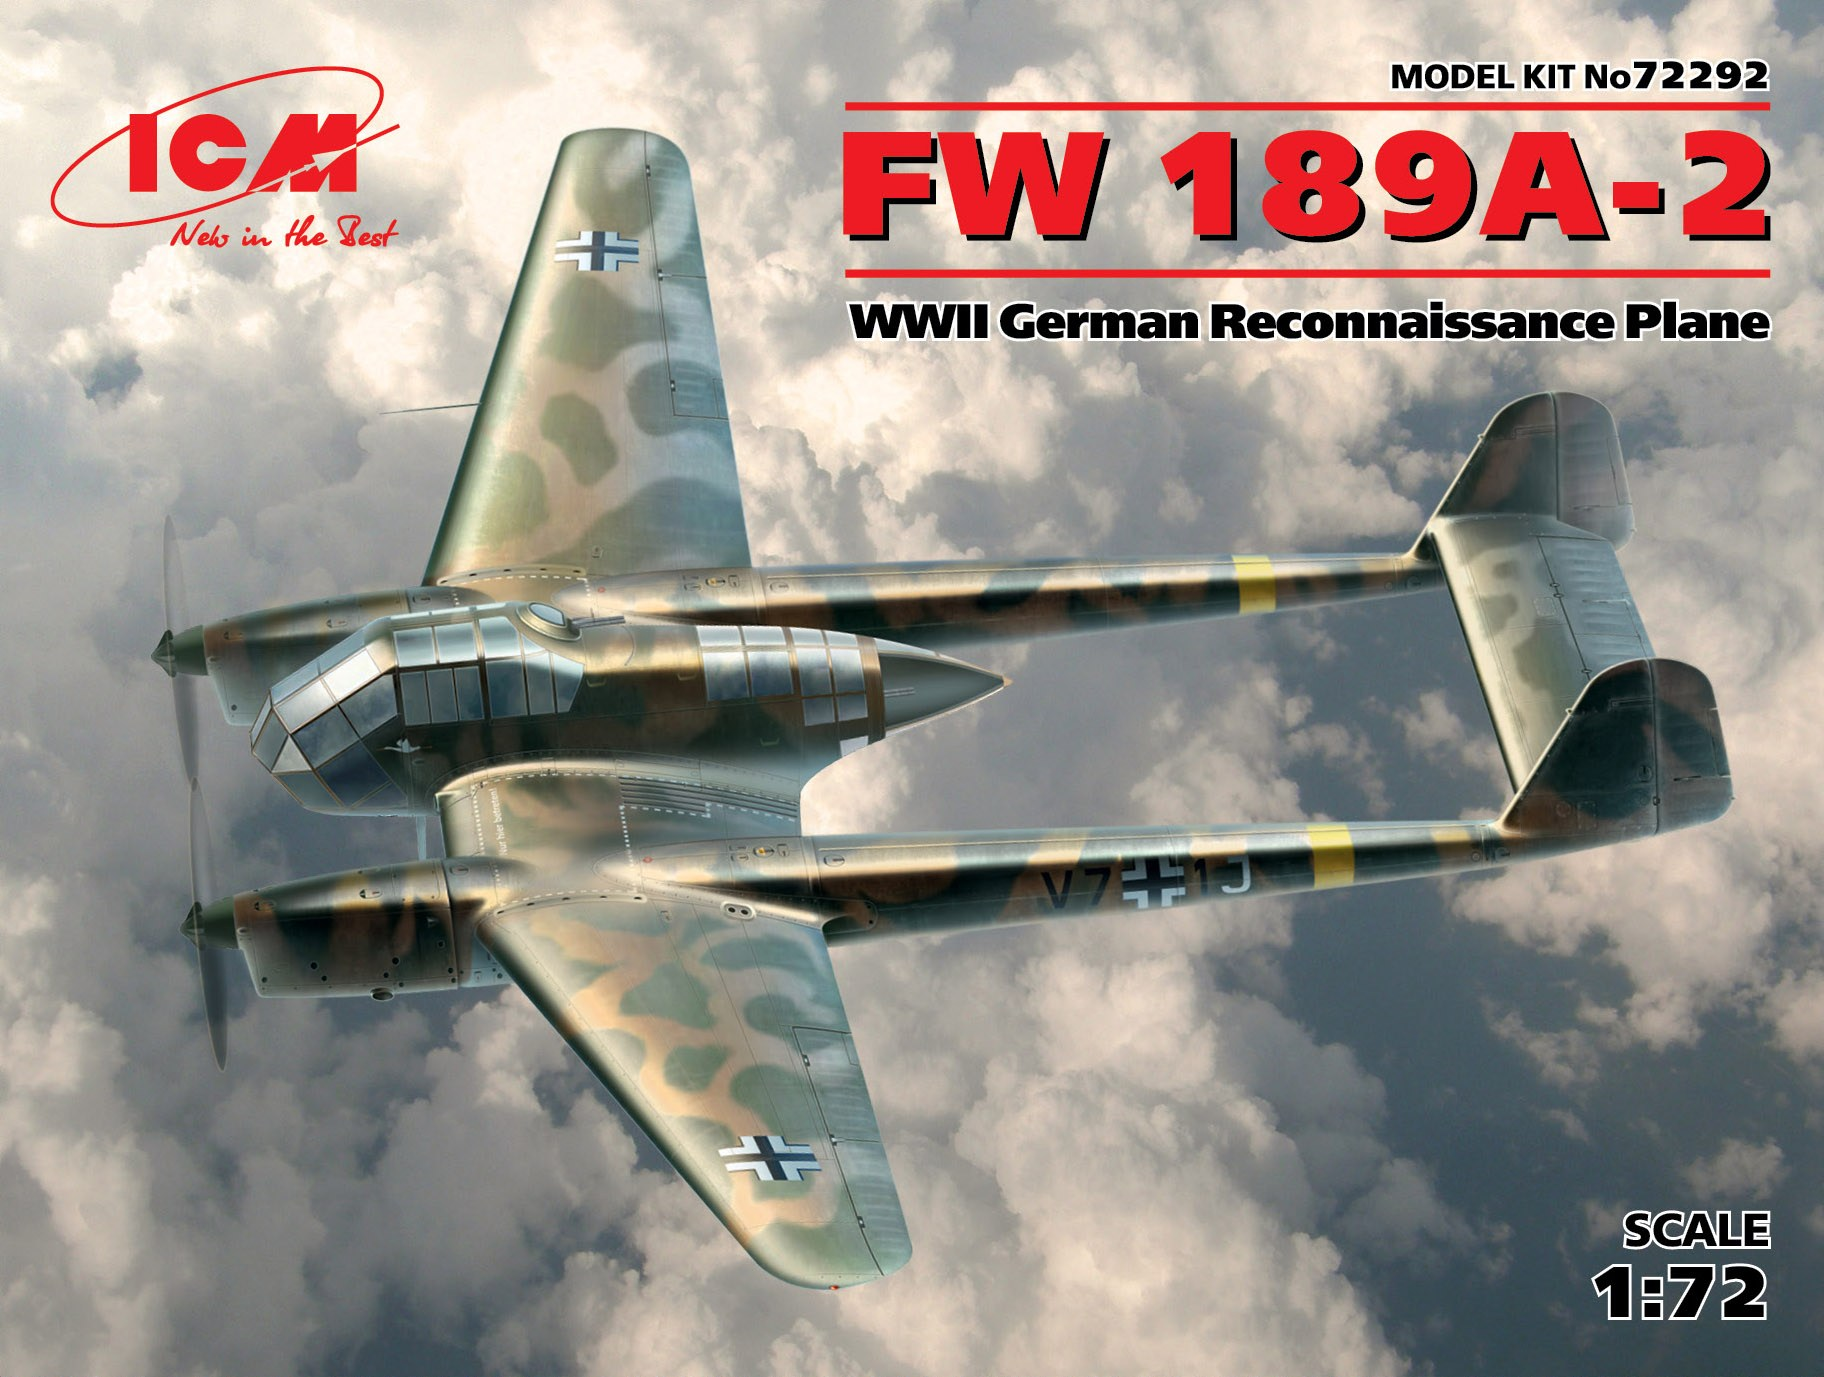 ICM - FW 189A-2. WWII German Reconnaissance Plane